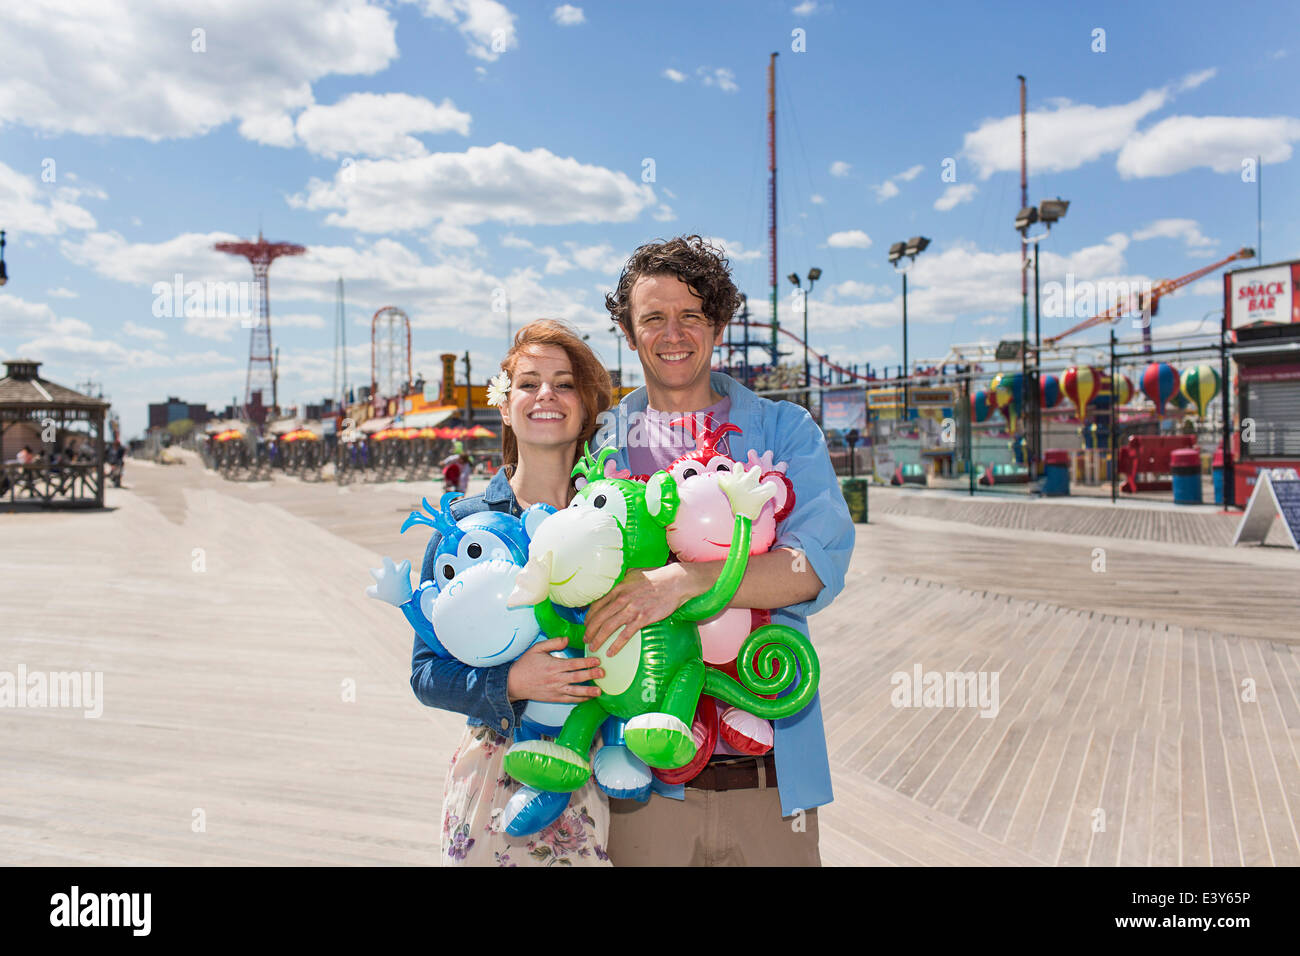 Portrait de couple avec les singes à gonflable amusement park Photo Stock